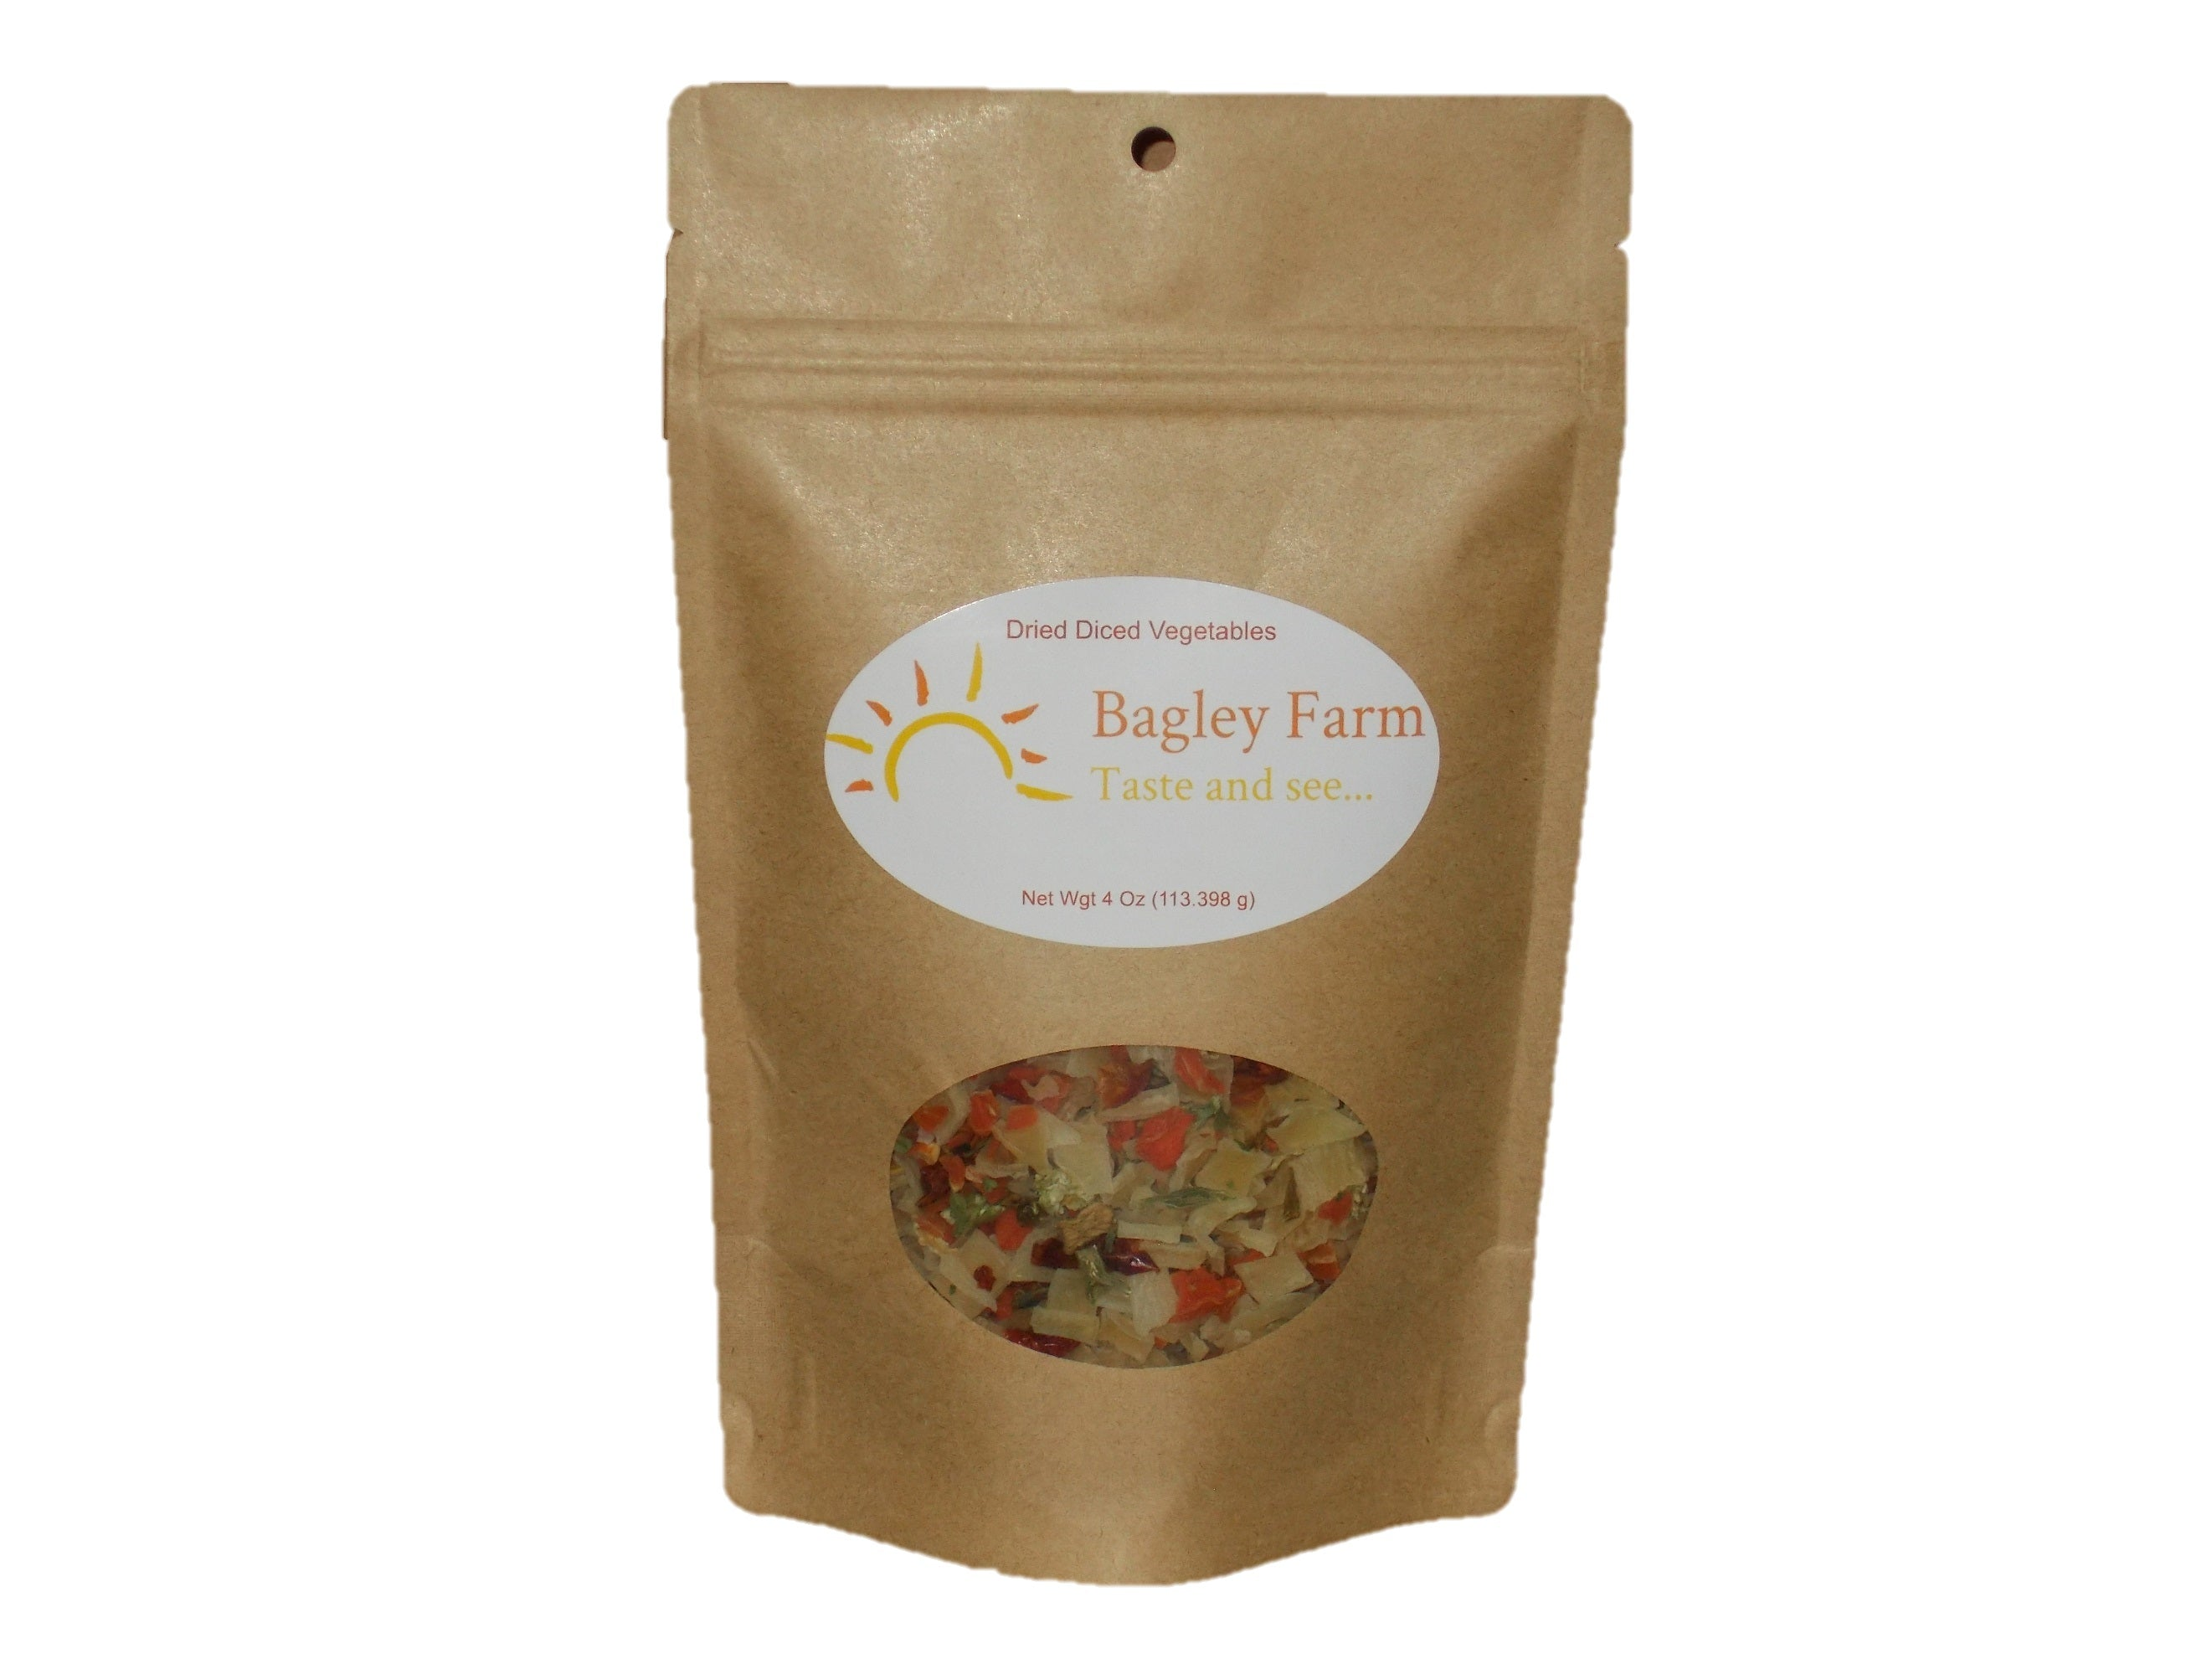 Bagley Farm's Natural Dried Diced Vegetables 4 oz